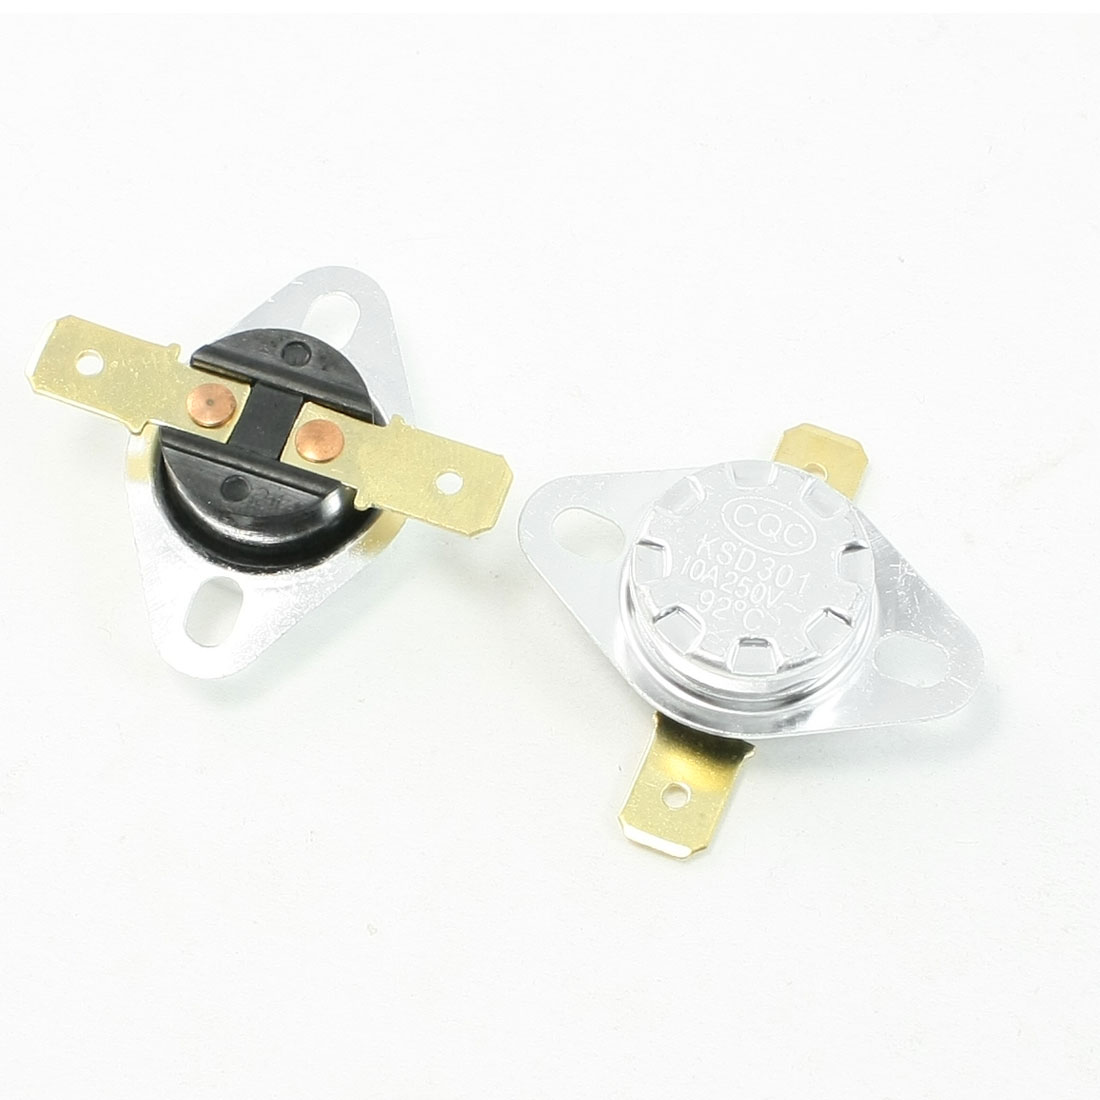 AC 250V 10A Normal Close 92C Temperature Control Switch Bimetal Thermostat 2 PCS